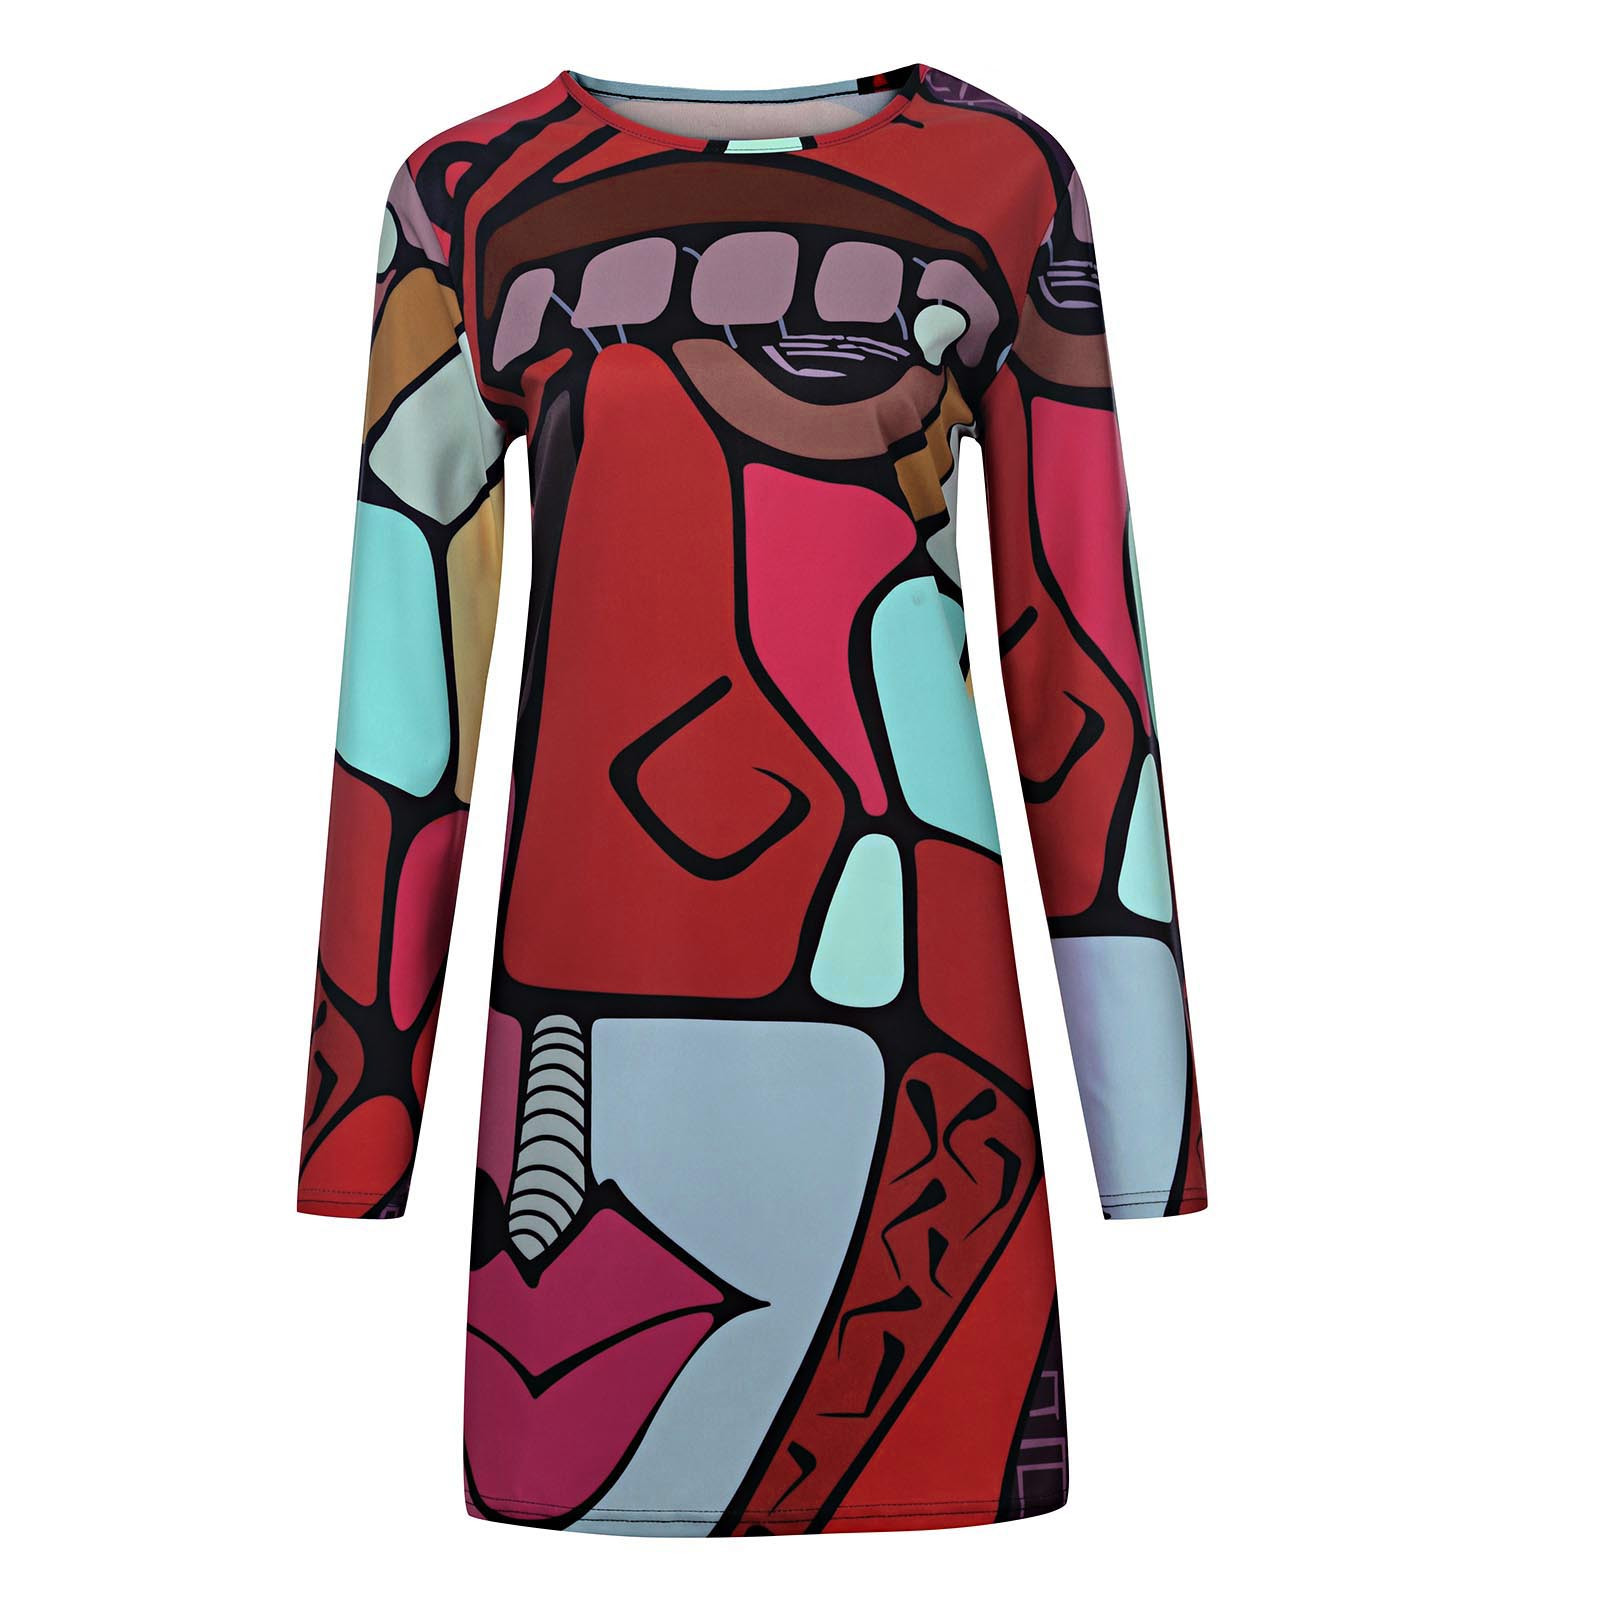 vestido de mujer Women Fashion Print Casual Long Sleeve O-neck Loose Knee-Length Dresses femme robe платье 2021